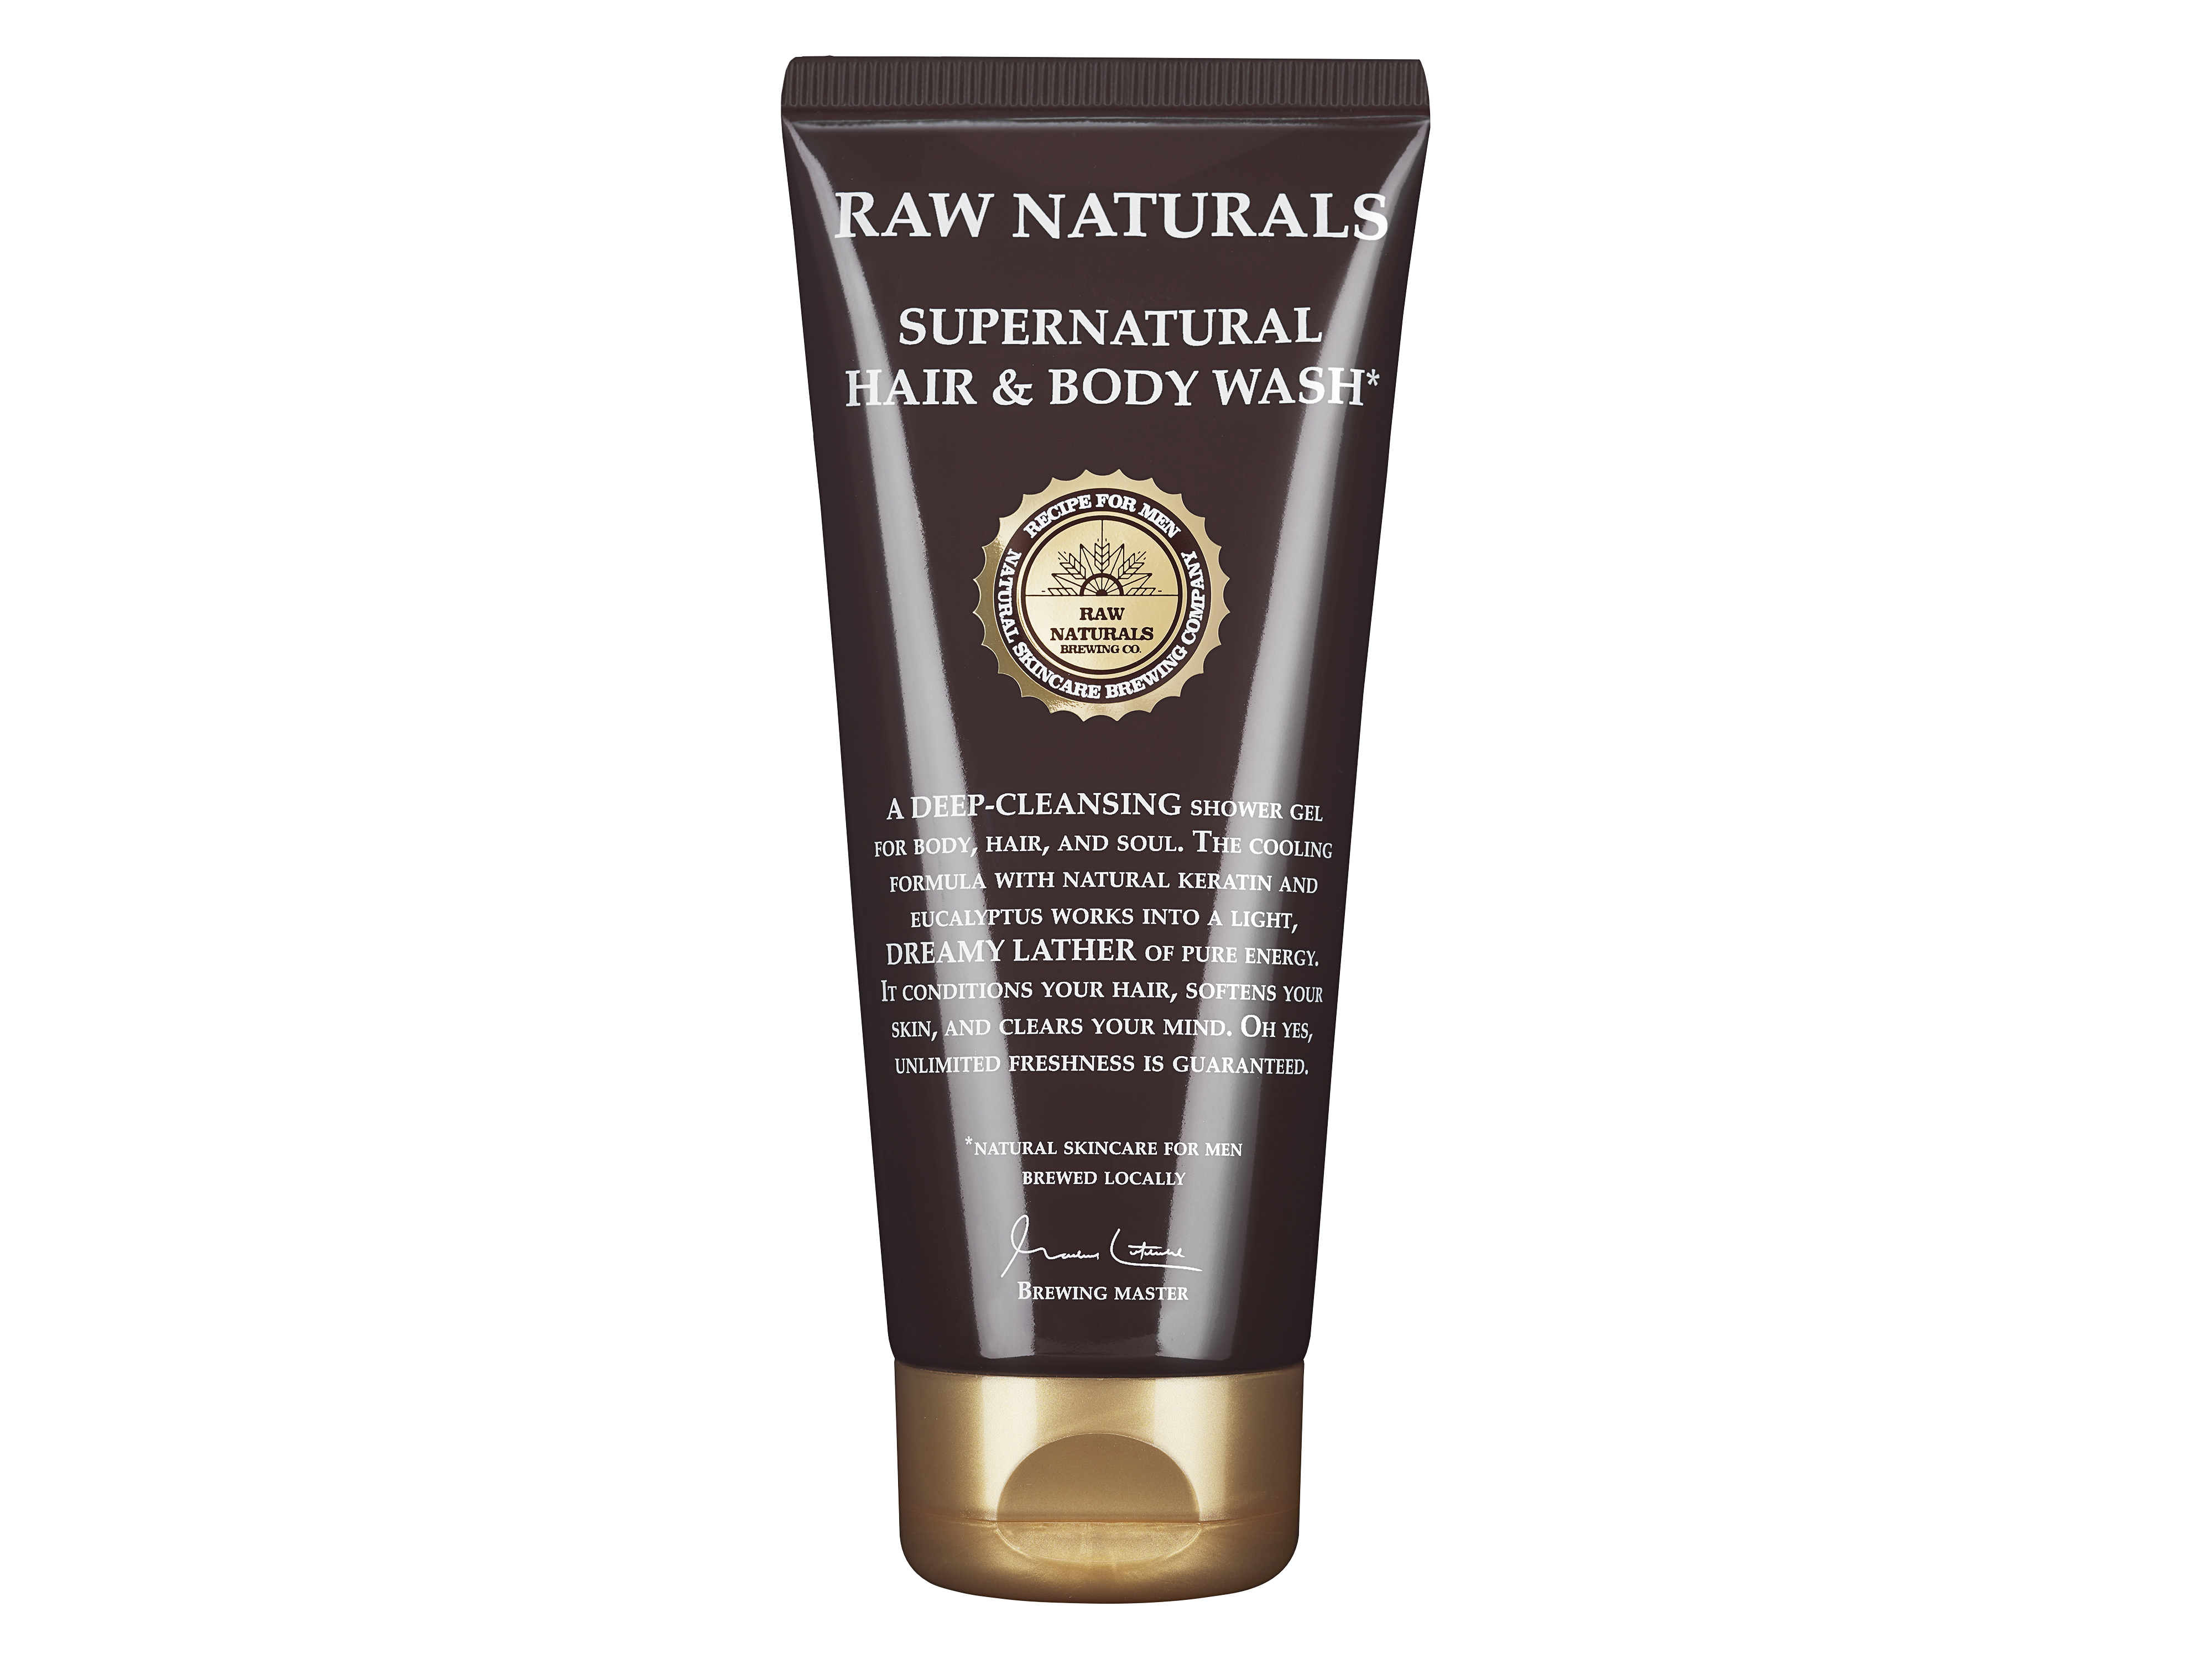 RAW Naturals 3 in 1 Supernatural Hair & Body Wash, 200 ml